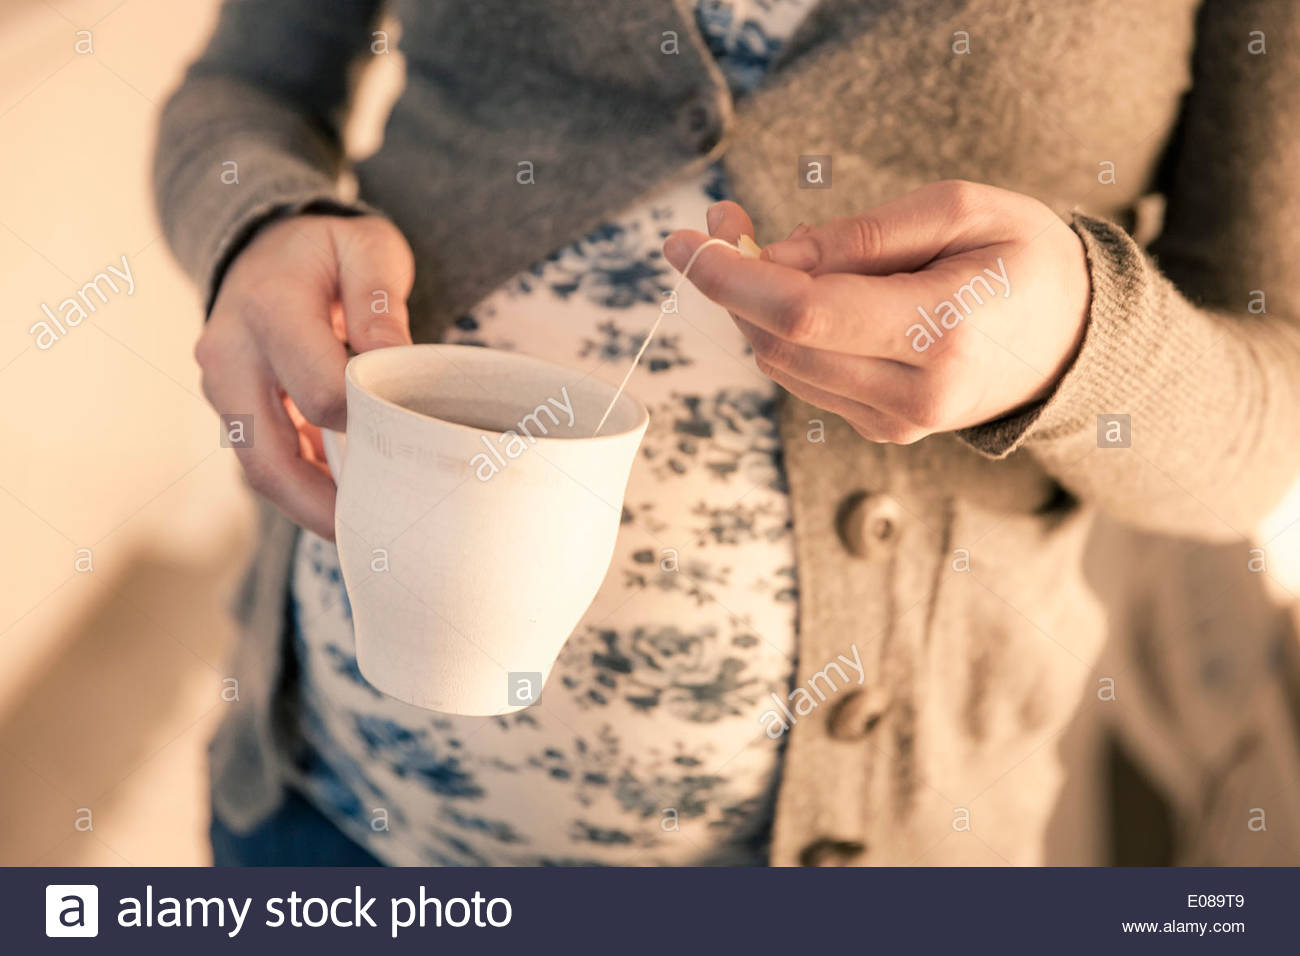 Midsection of pregnant woman dipping teabag into cup - Stock Image